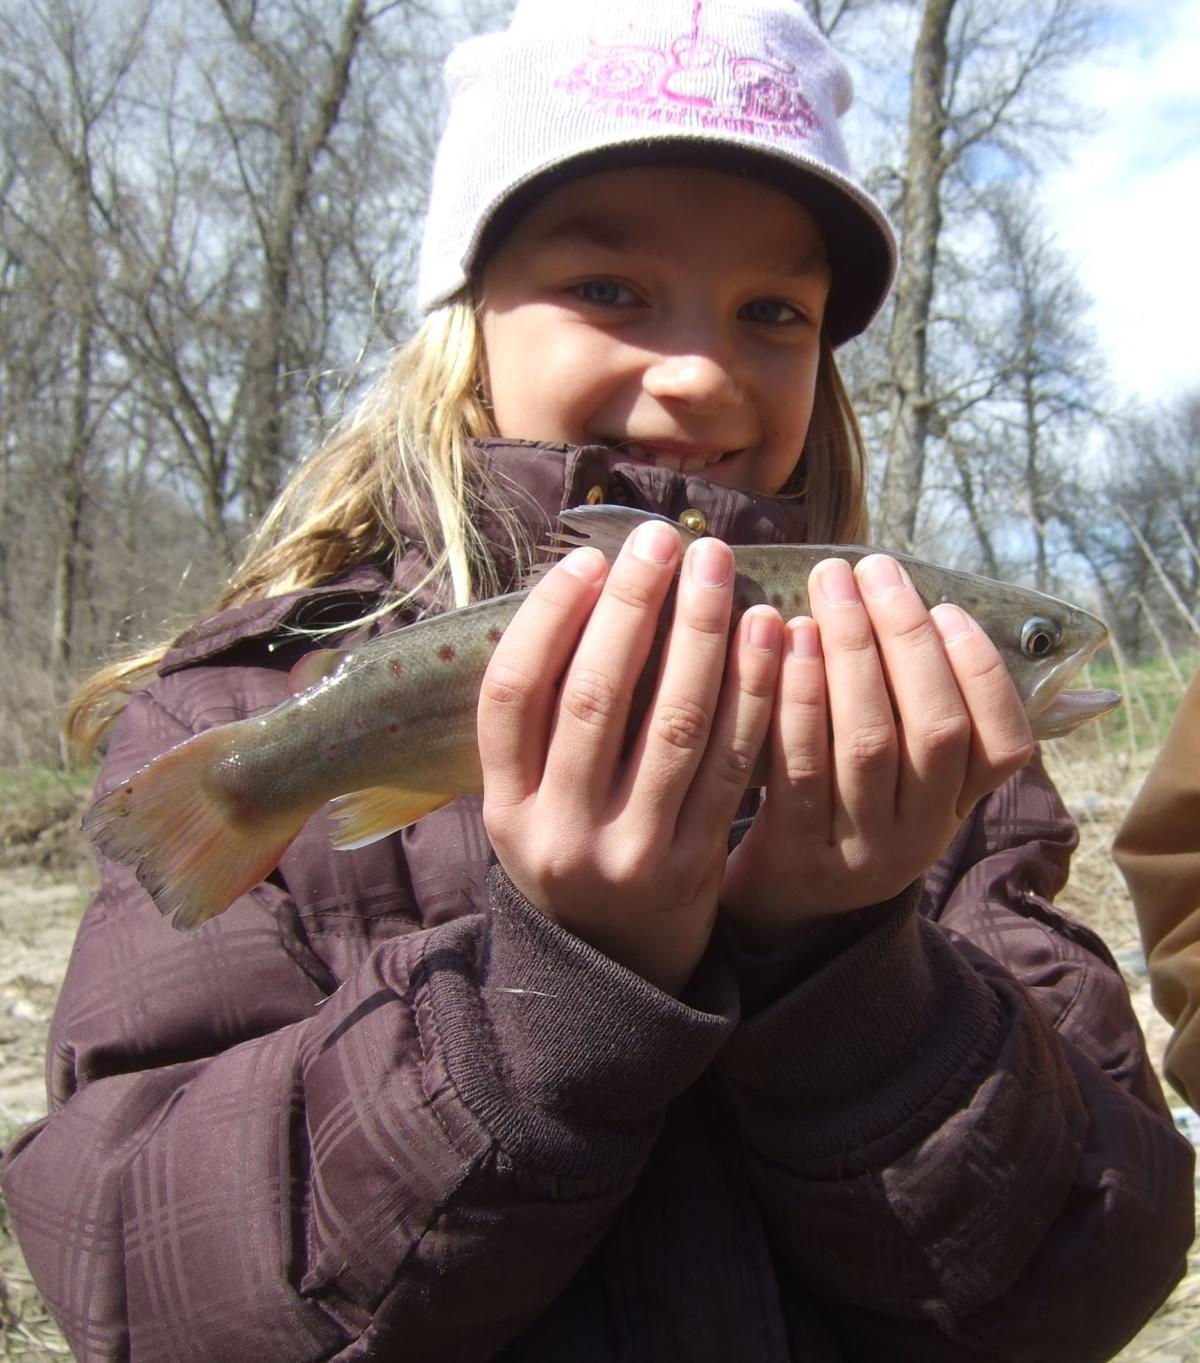 YouthTrout1